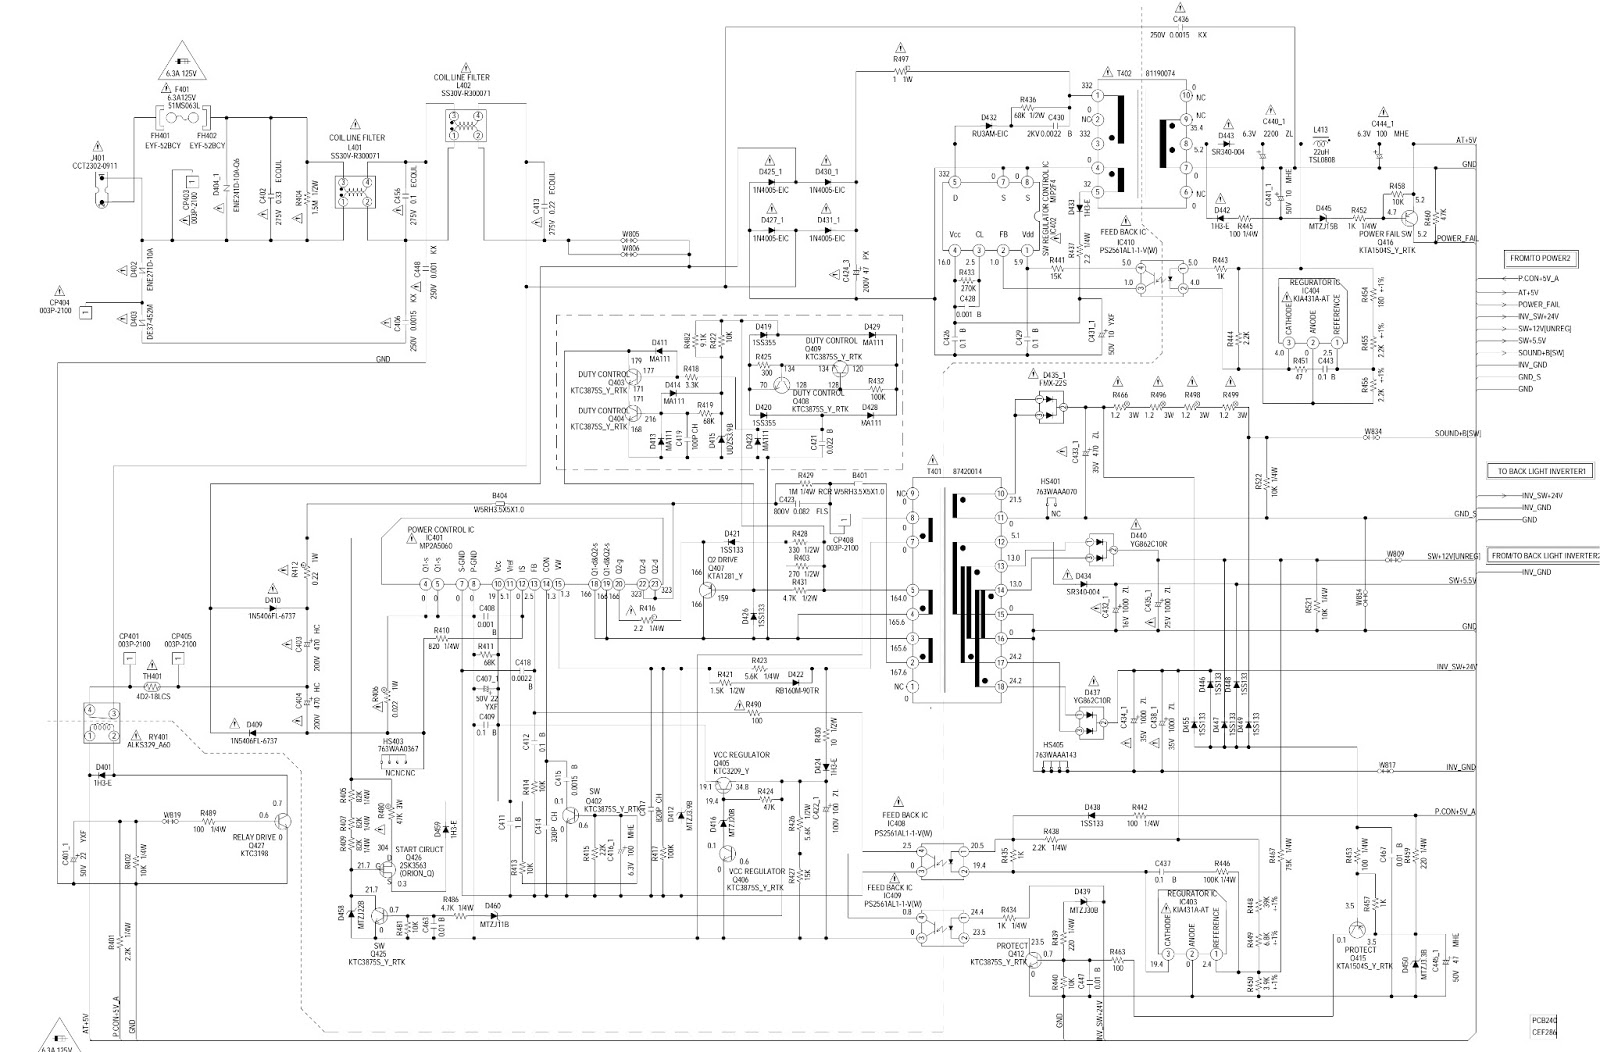 rca tv schematic diagram wiring diagram for you rca l32wd26d lcd tv main power sub power [ 1600 x 1052 Pixel ]